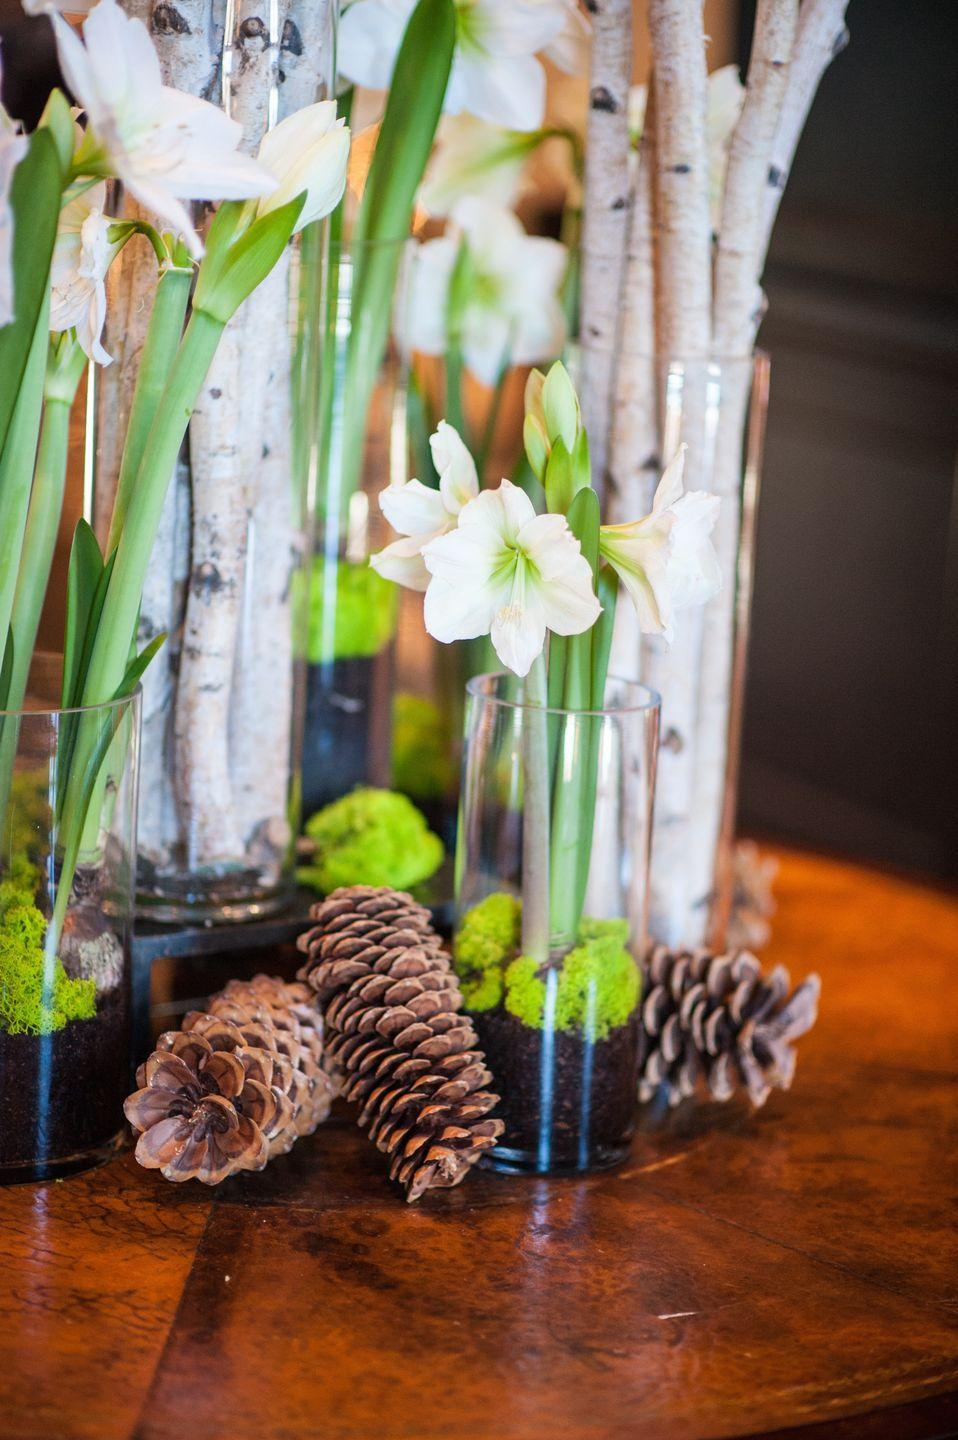 "<p>While you may not actually make it outside for, say, a sleigh ride through the frosted woods, you can still include the outdoor charms of the season in your centerpiece. Arrange classic white flowers in vases, but cushion with strewn pinecones and separate vases filled with sticks and branches. </p><p><em>Via </em><em><a href=""http://www.decorationinc.com"" rel=""nofollow noopener"" target=""_blank"" data-ylk=""slk:Decoration Inc."" class=""link rapid-noclick-resp"">Decoration Inc.</a></em></p>"